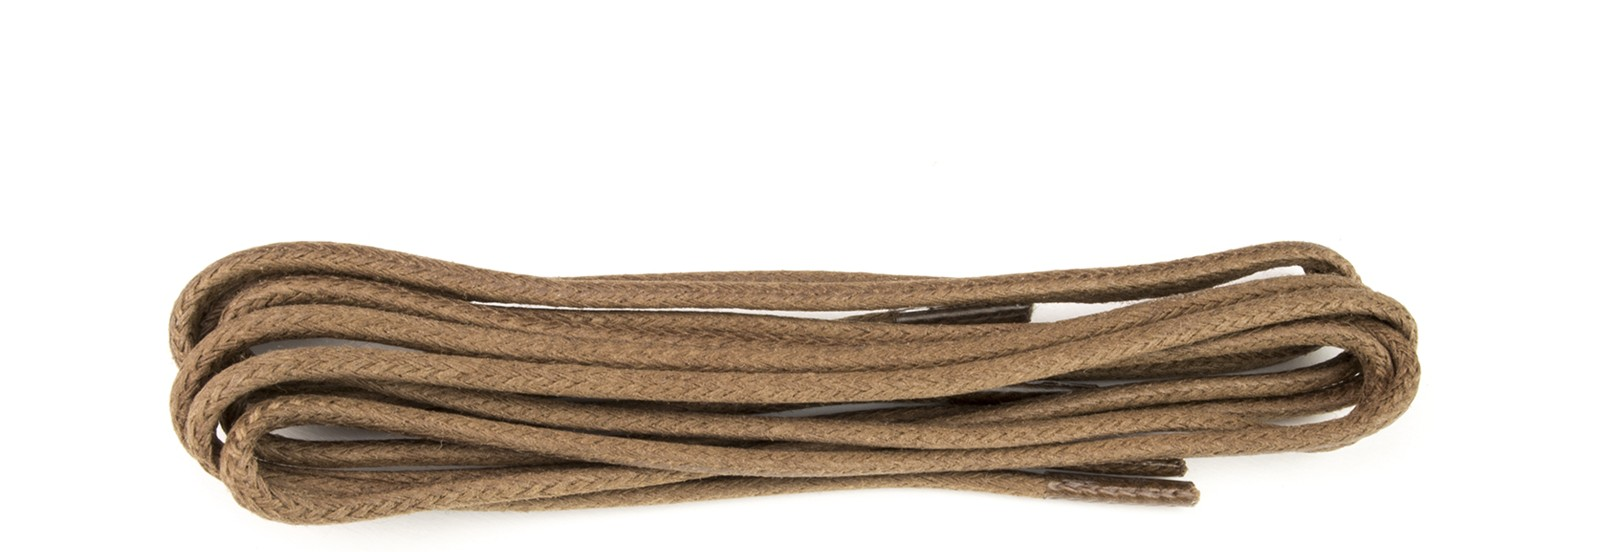 Tan Wax Polished Fine 2mm Round Laces Laces